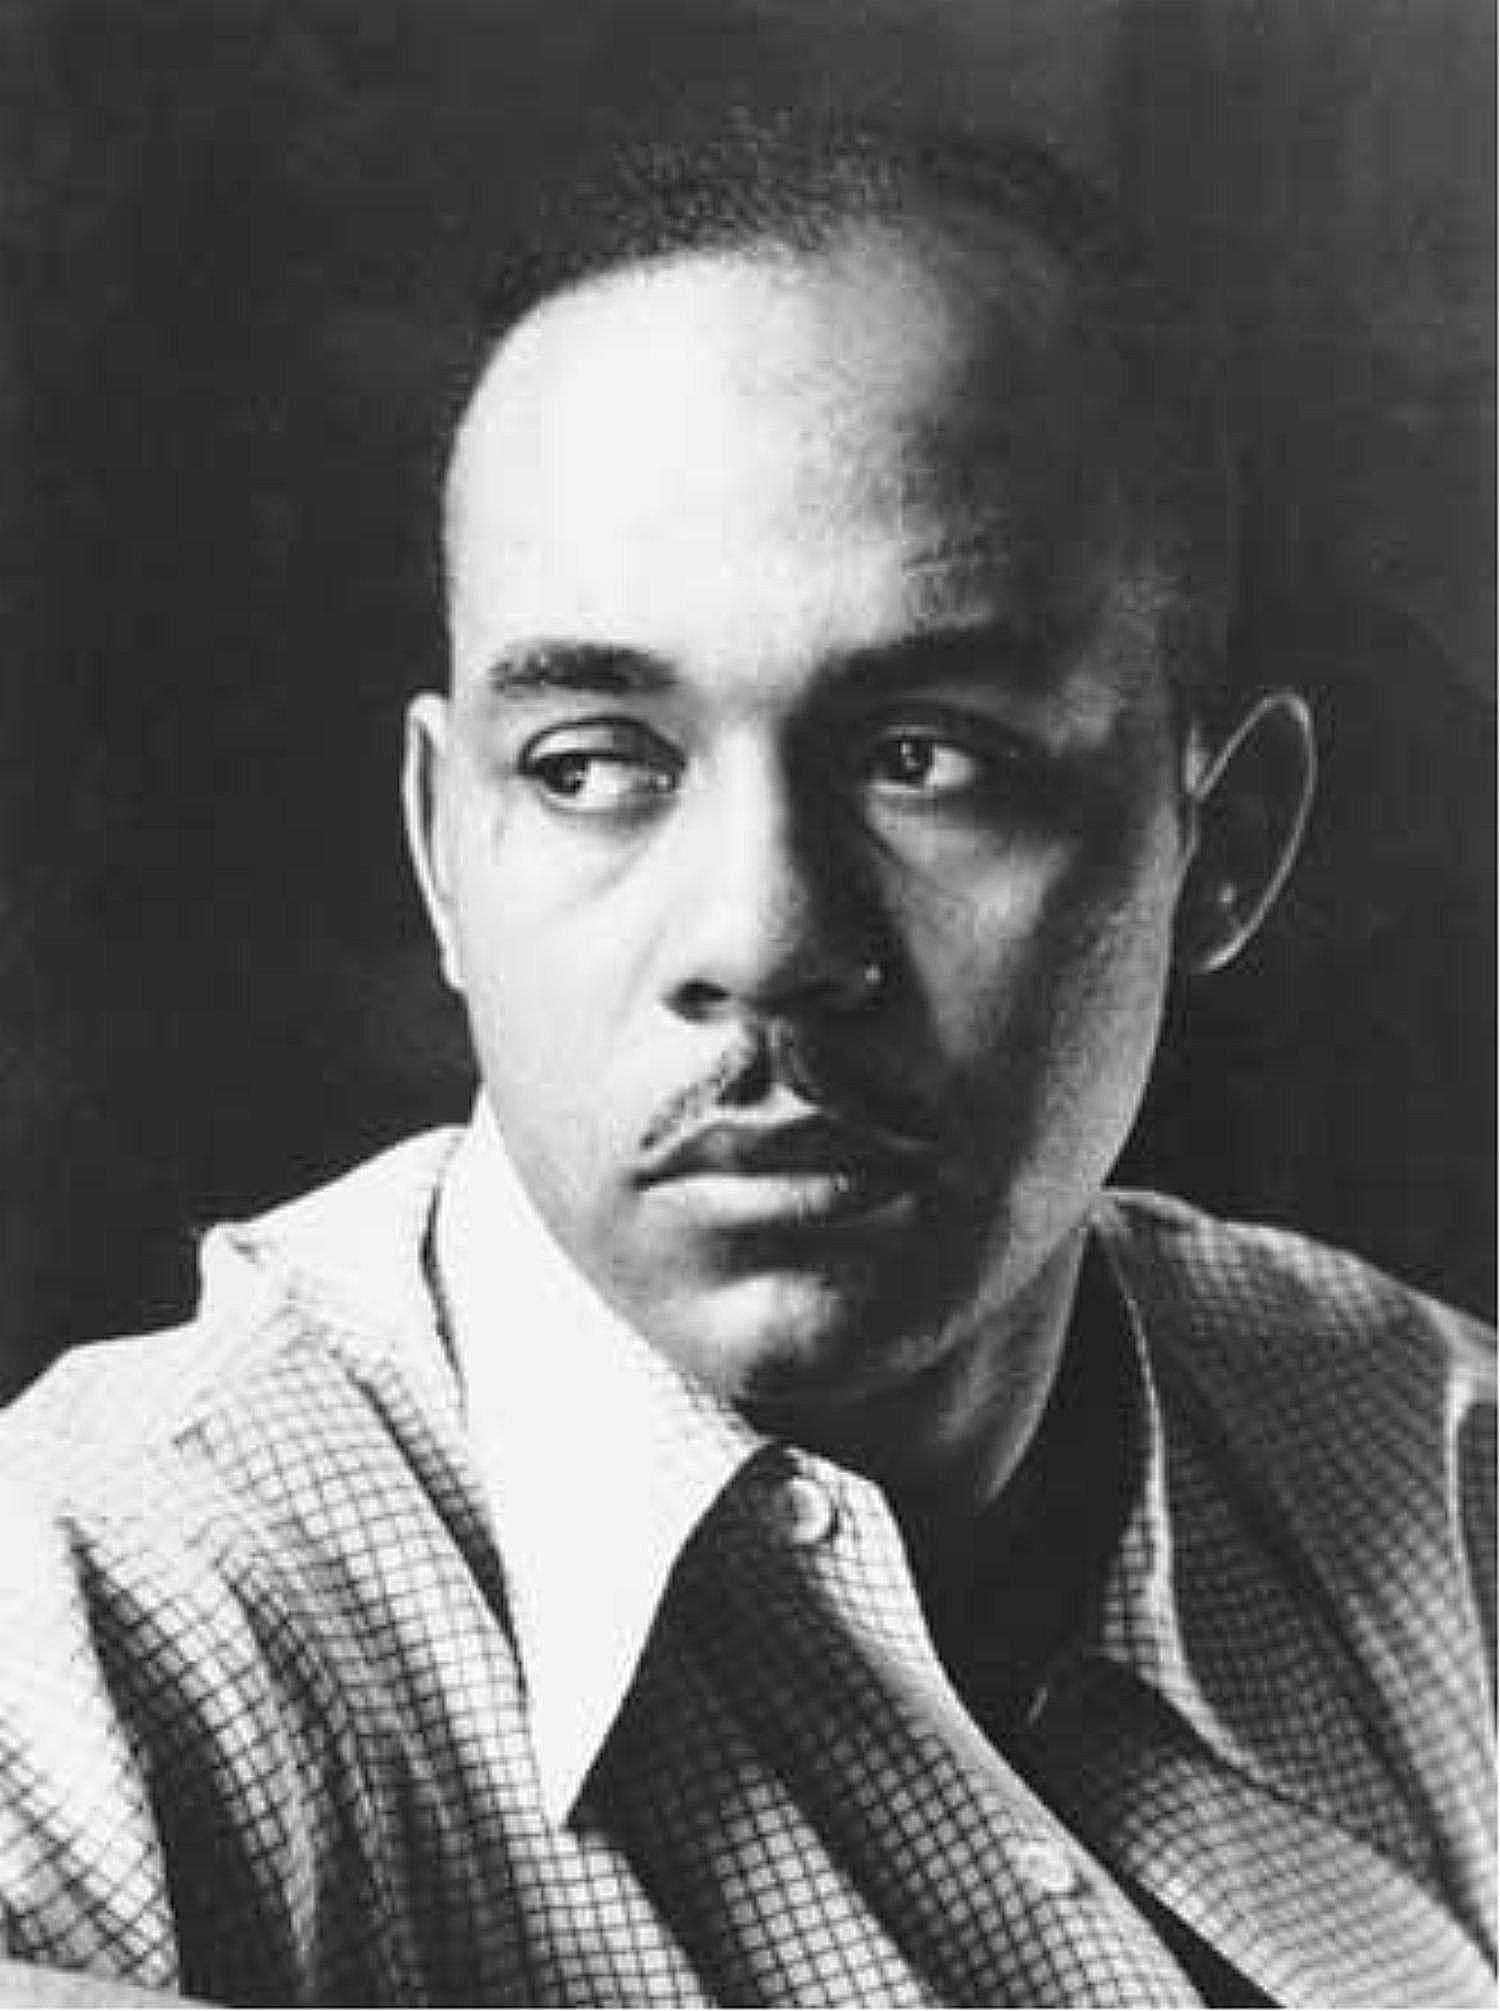 the life of ralph waldo ellison an american writer Keywordsoklahoma arts humanities ralph ellison novelist african american jazz  modernist writers  to his life's work named for ralph waldo emerson, ellison .